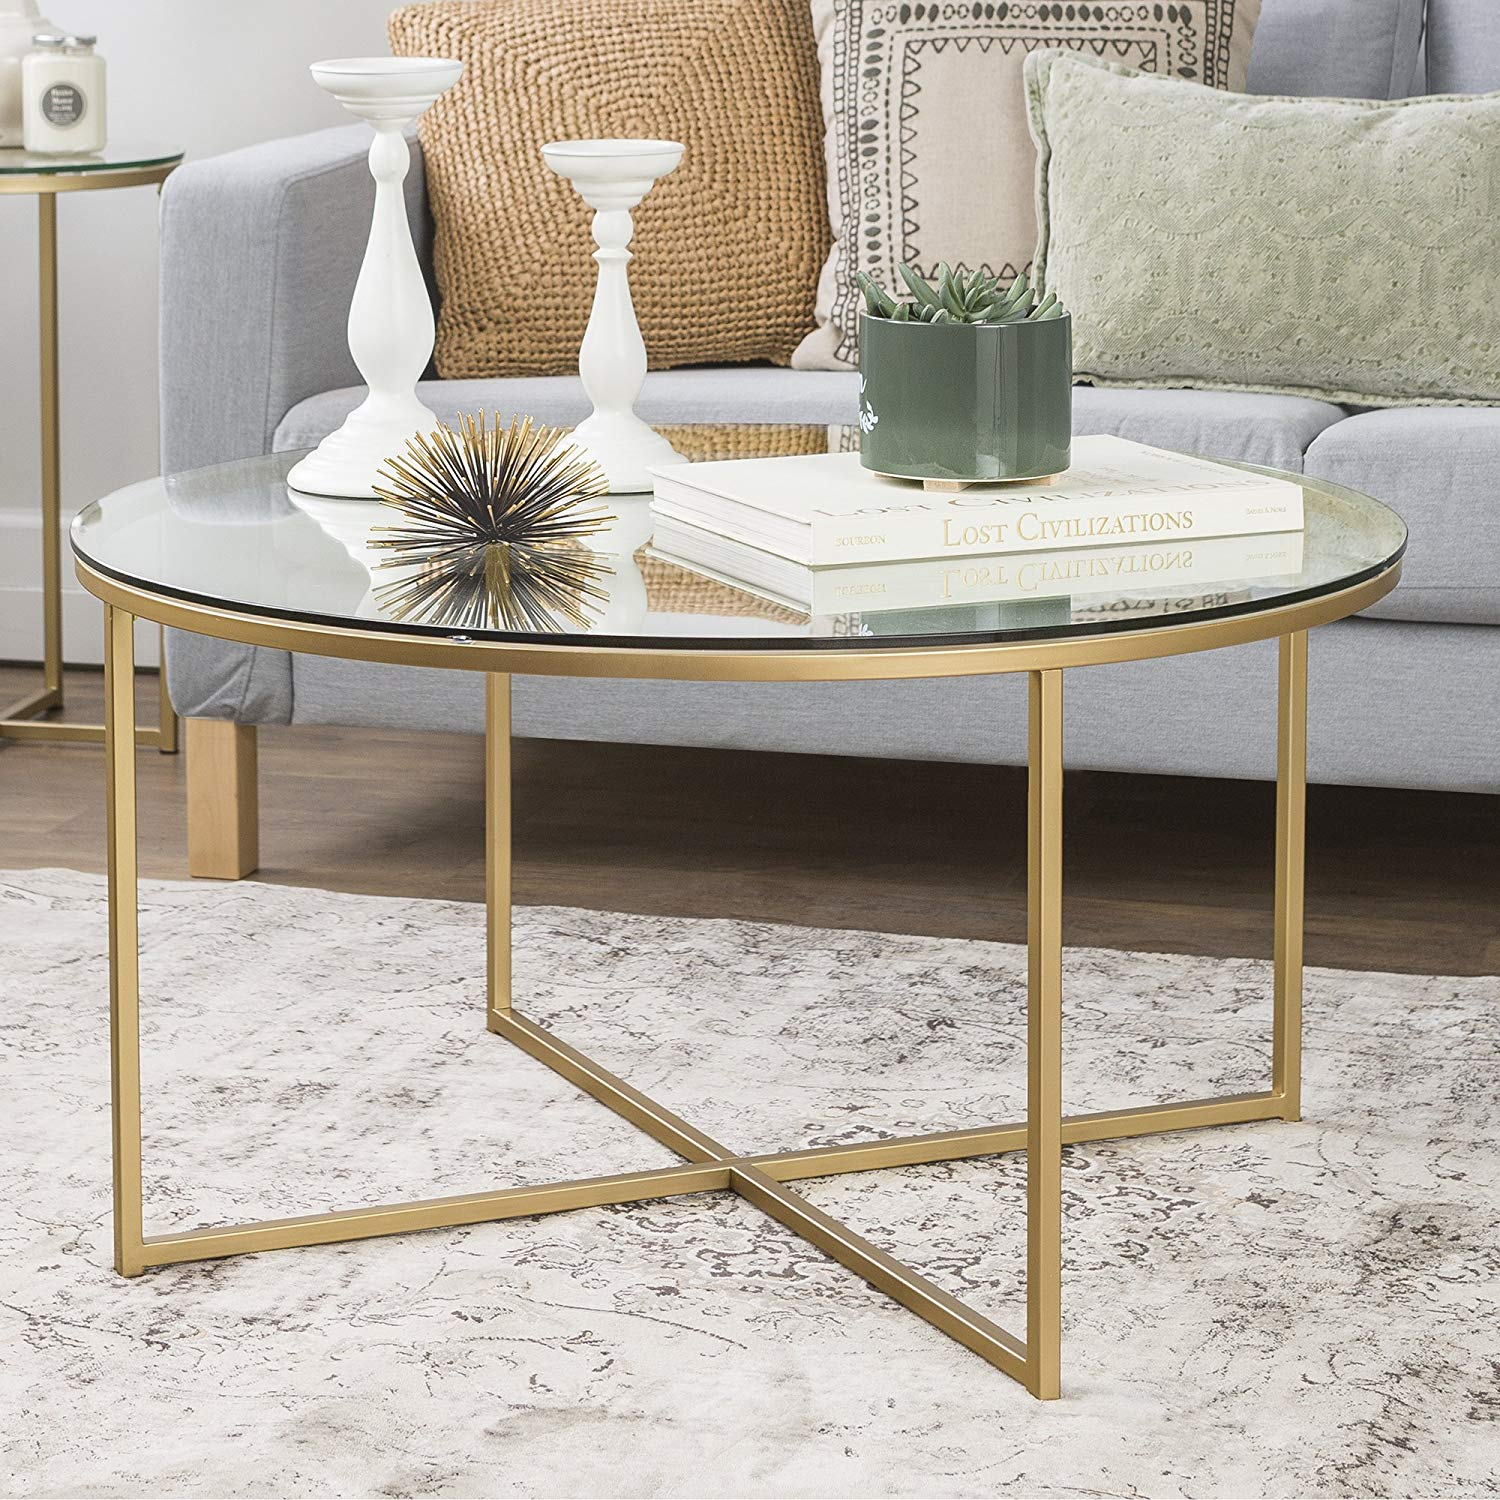 36 inch, Round with X-Base Coffee Table - Glass/Gold, Sturdy Metal Frame, Painted Metal Base, Glass top, Living Room, Bundle with Our Expert Guide with Tips for Home Arrangement